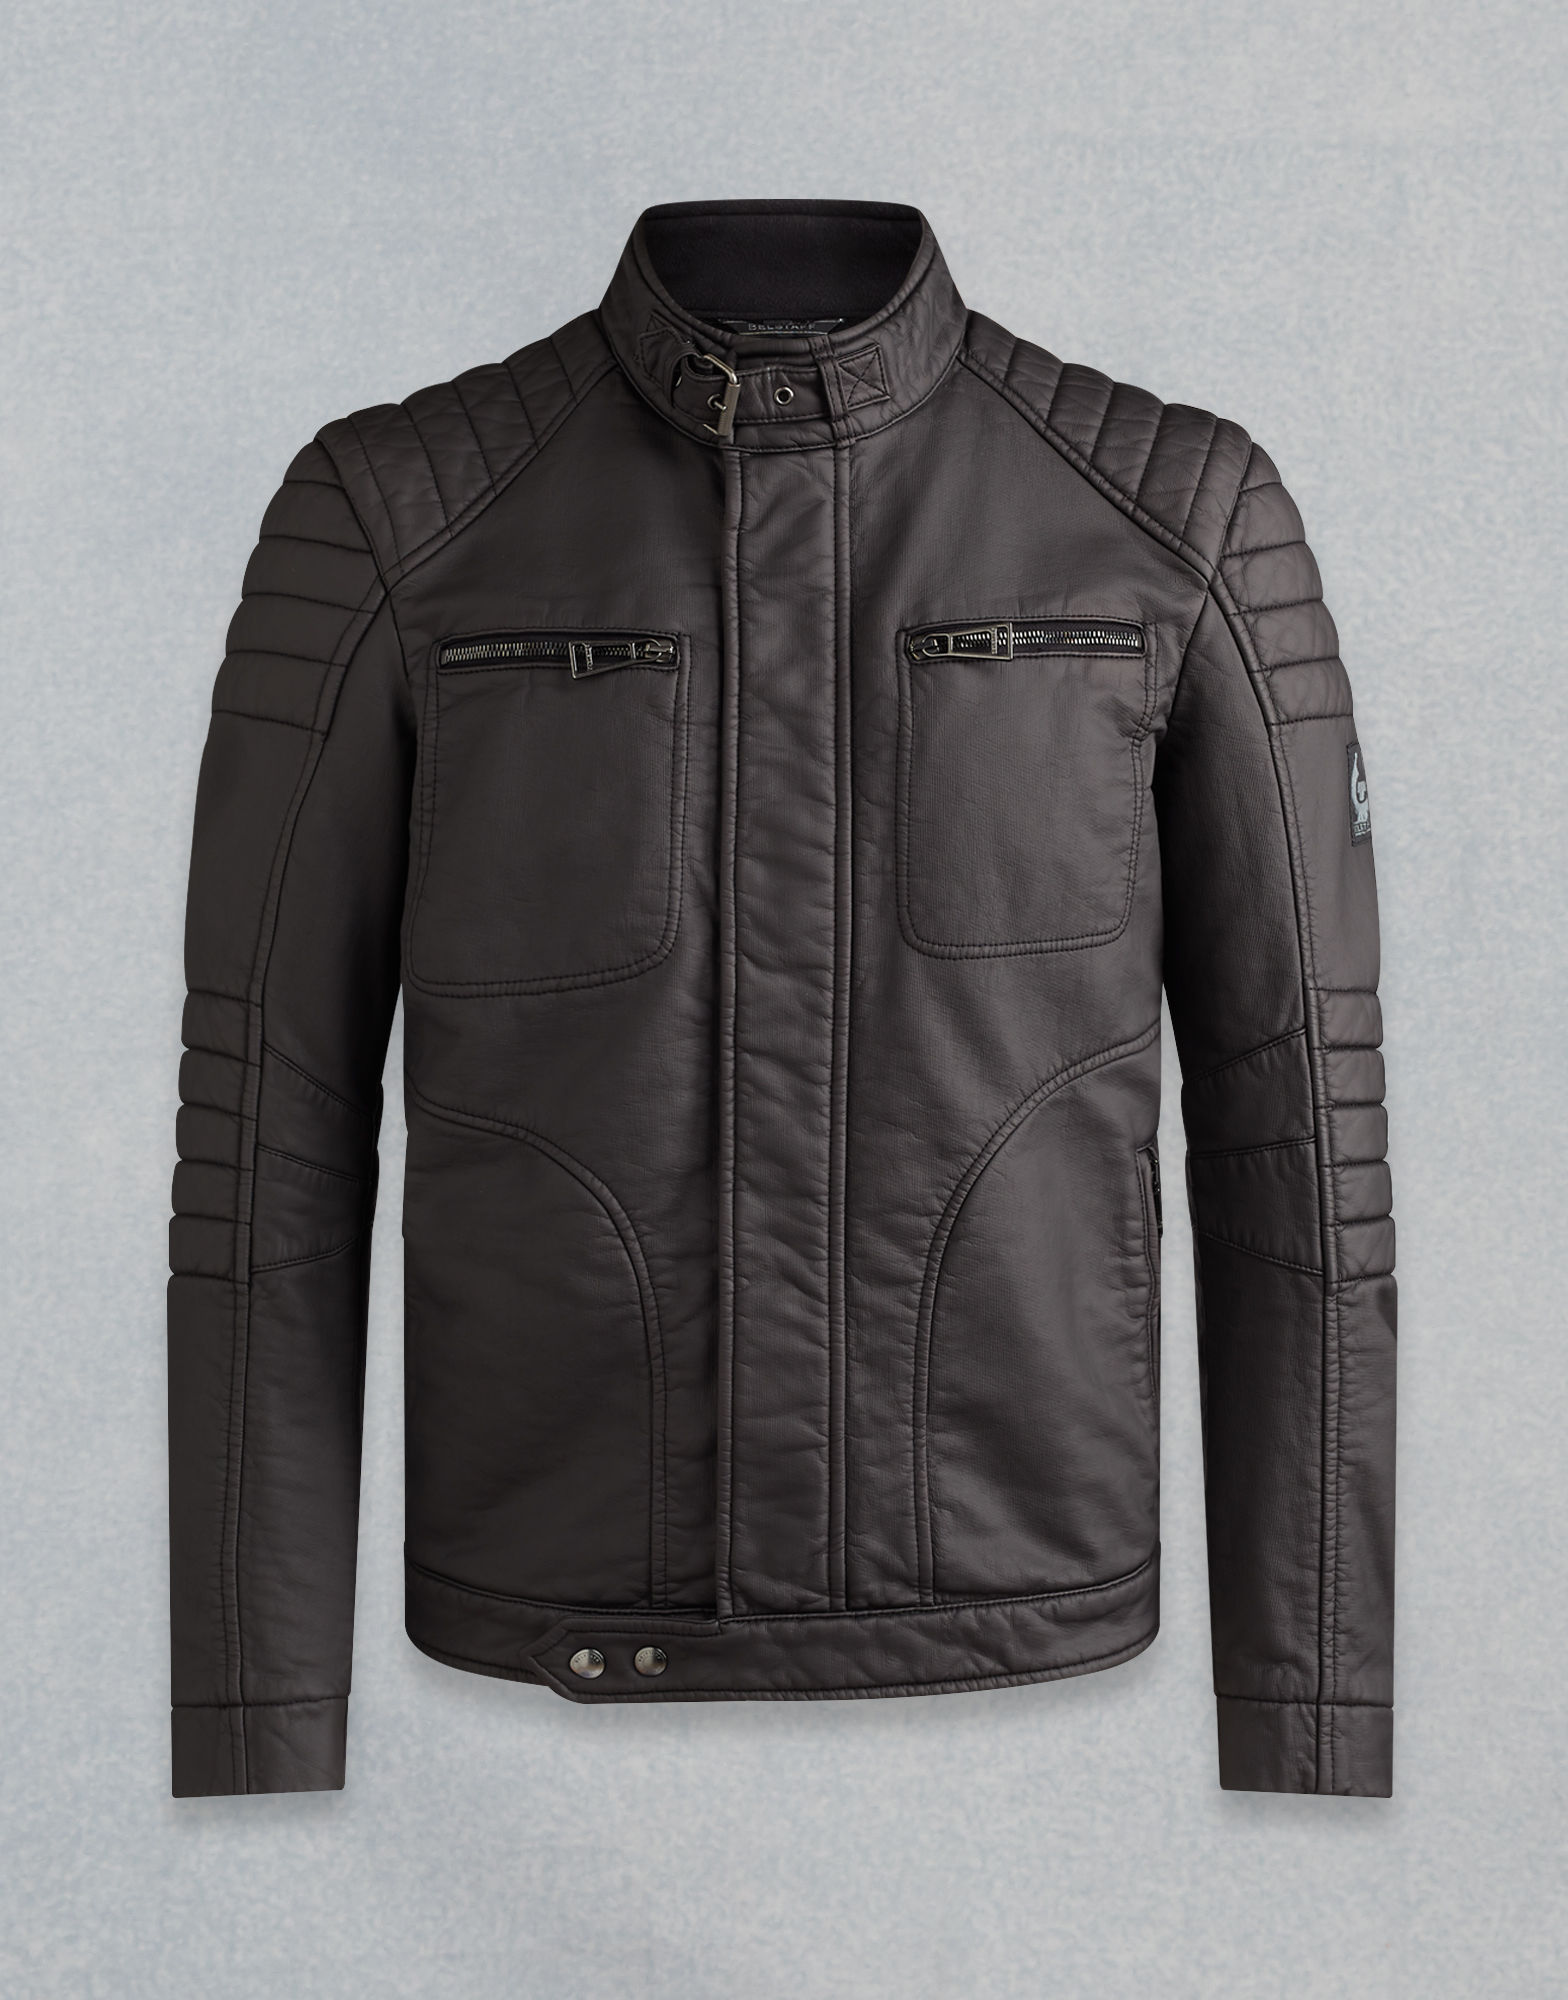 Belstaff Jackets – Biker style of the luxury label